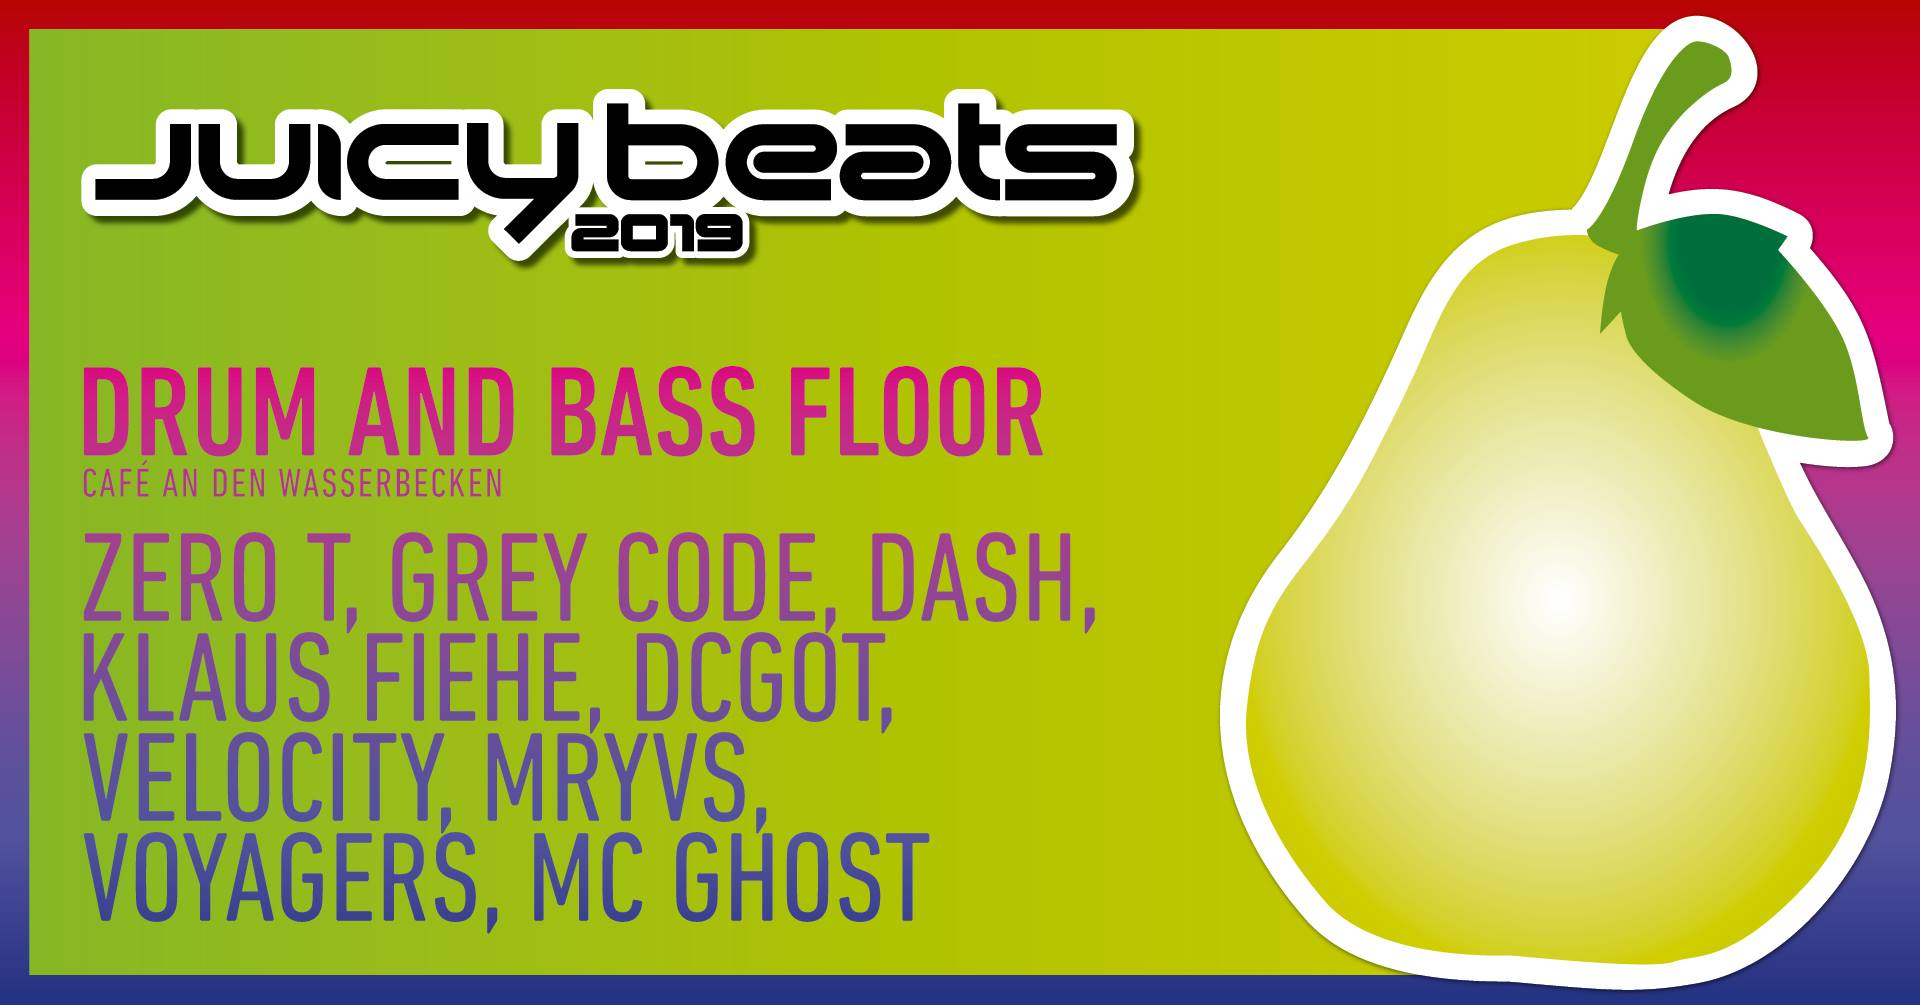 Juicy Beats 2019 – Drum and Bass Floor